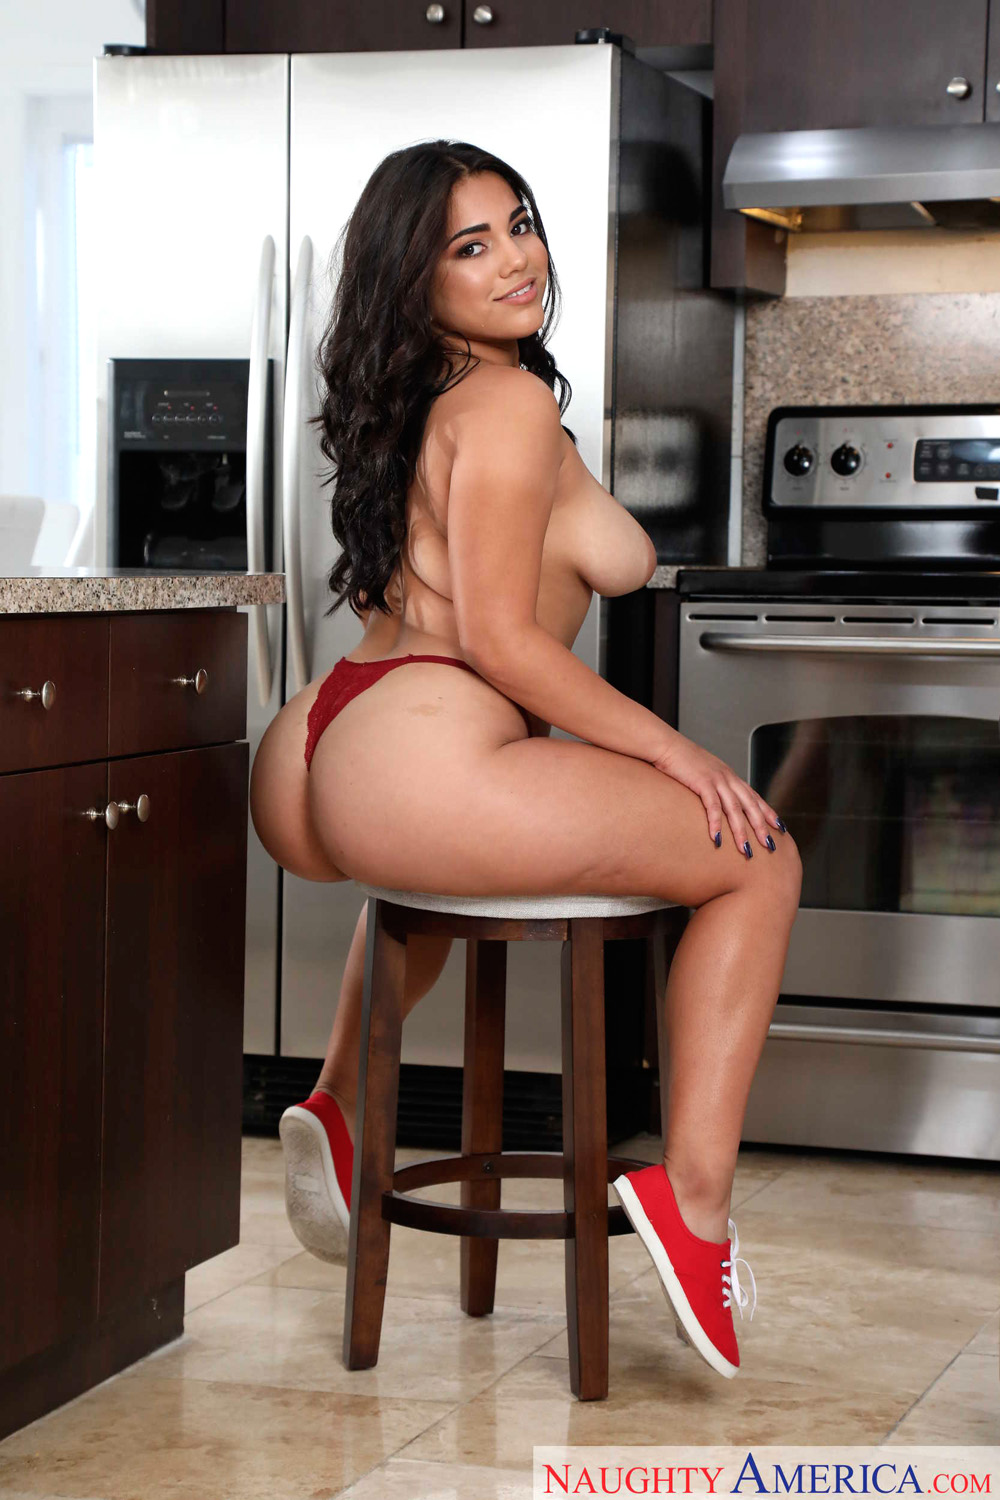 Julz Gotti gets screwed by her friends brother in the kitchen